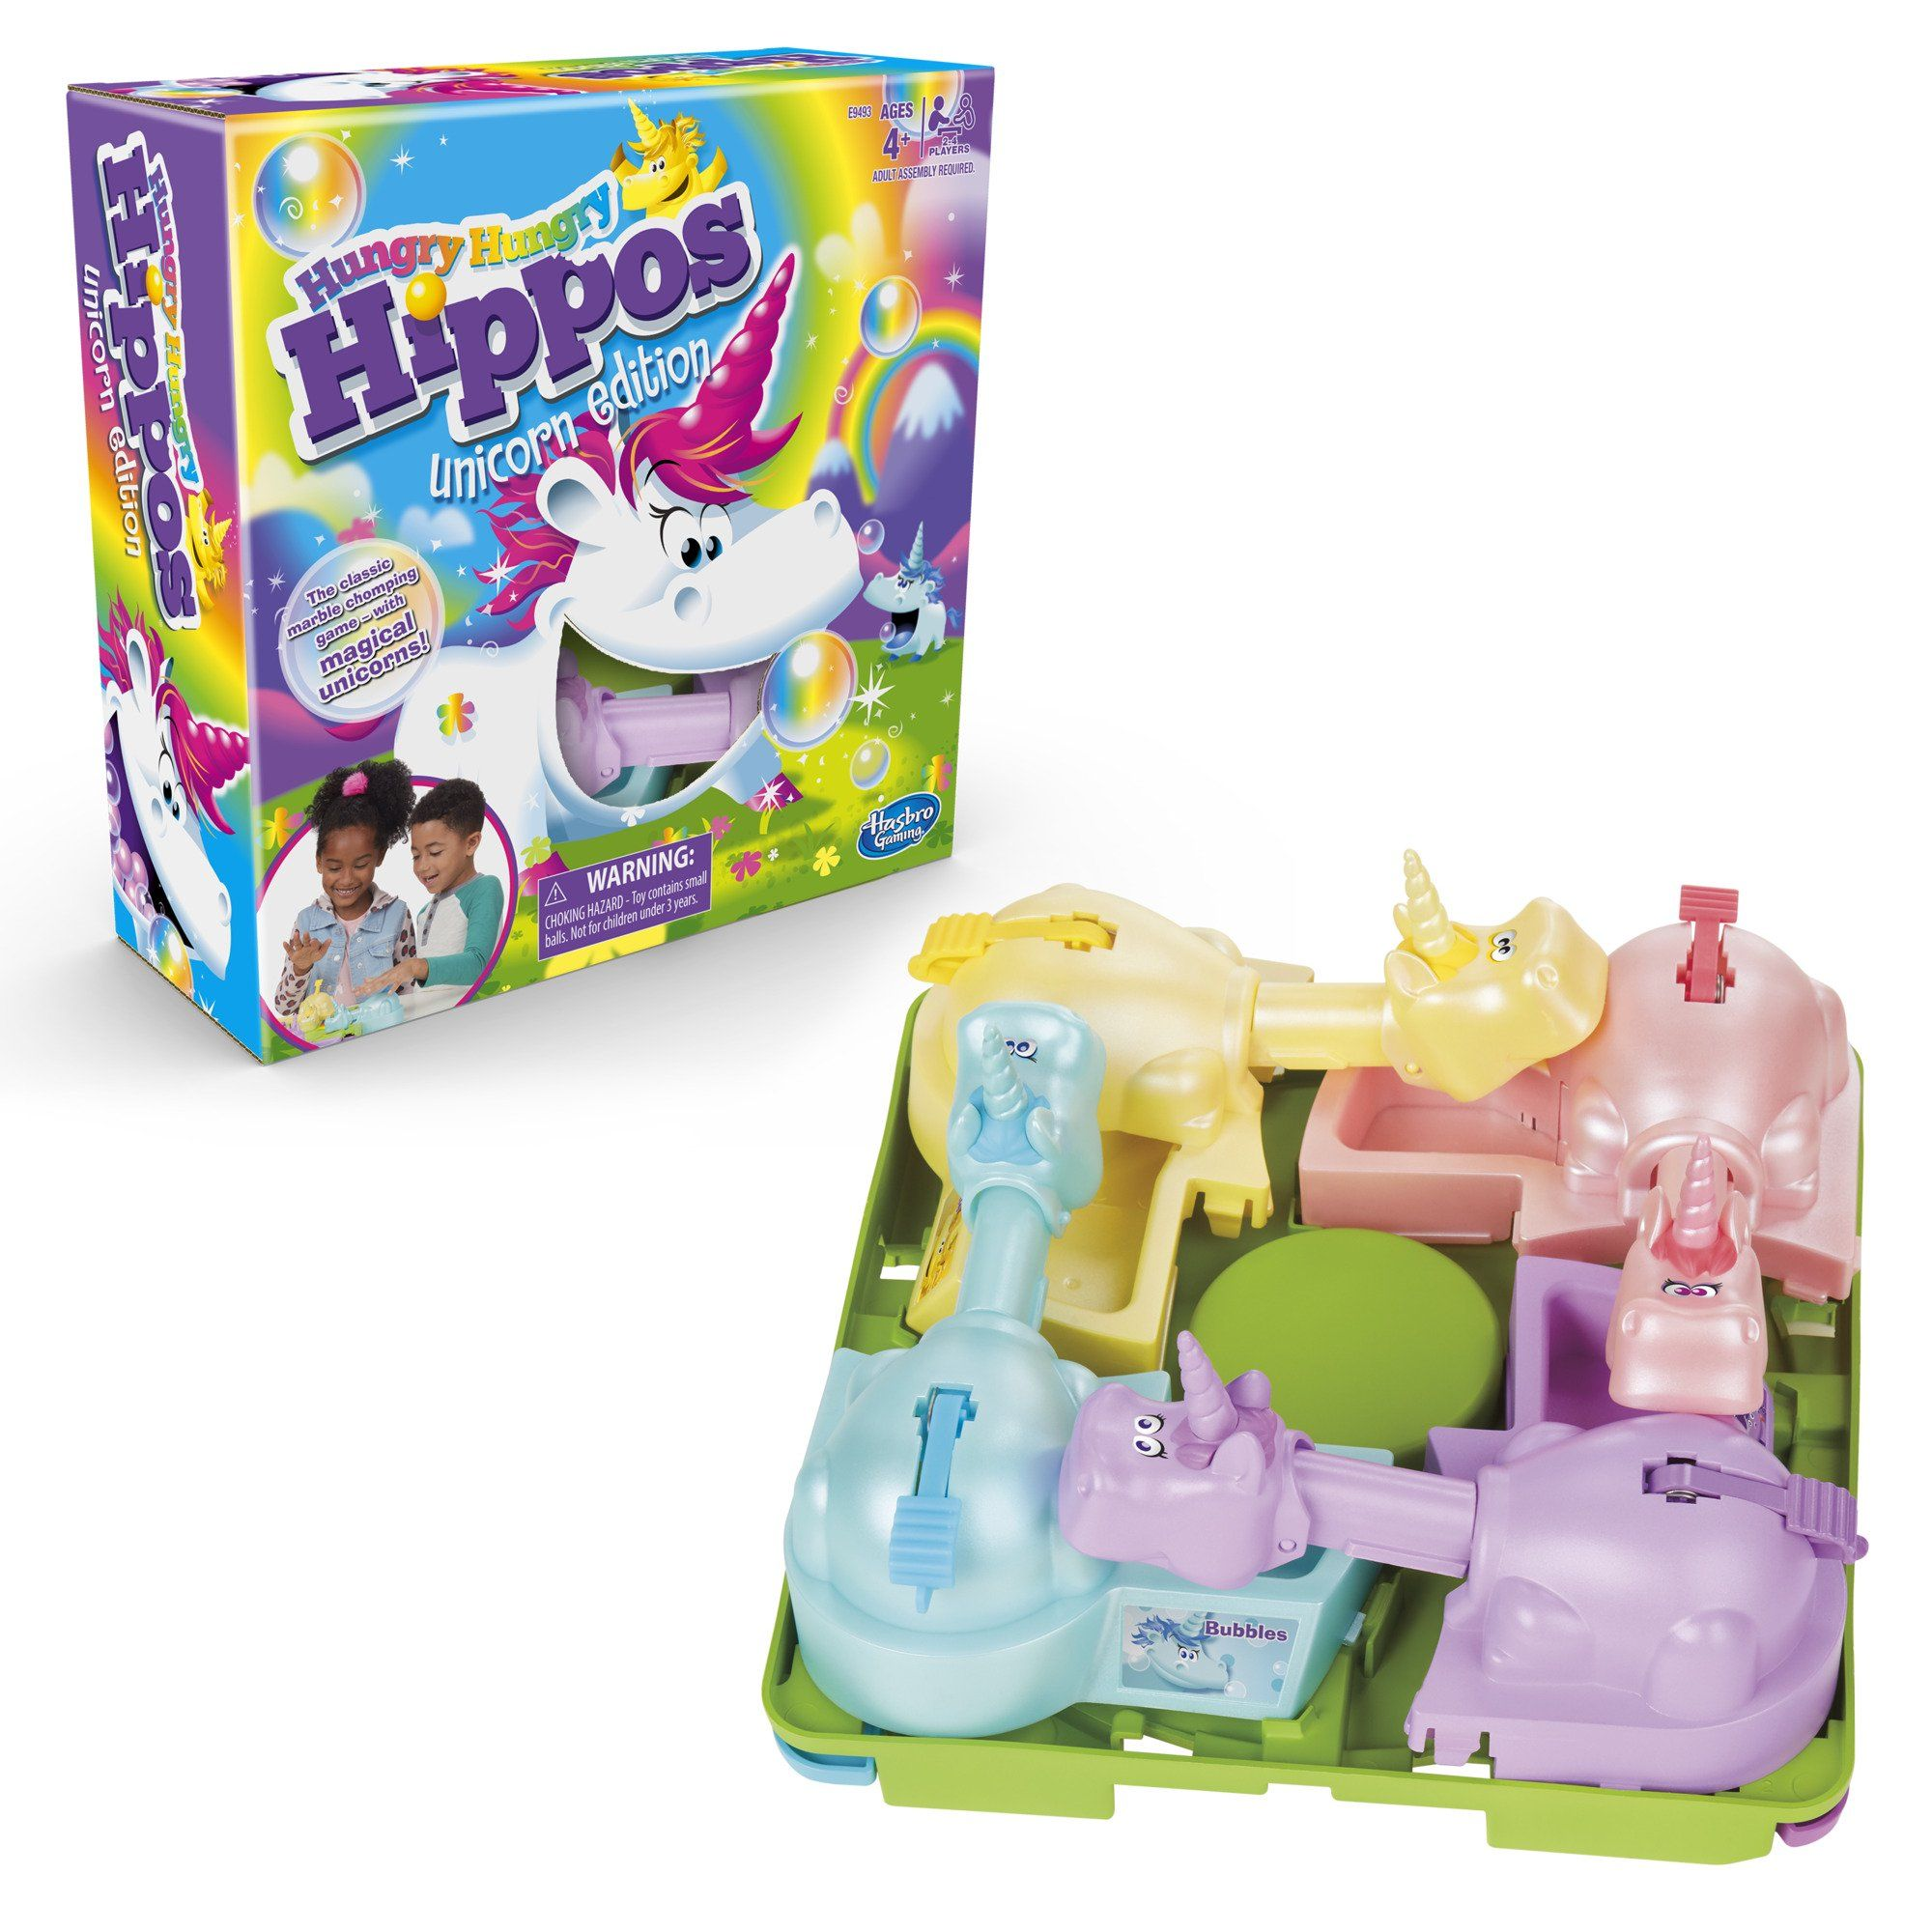 Hungry hungry hippos unicorn edition board game for 24